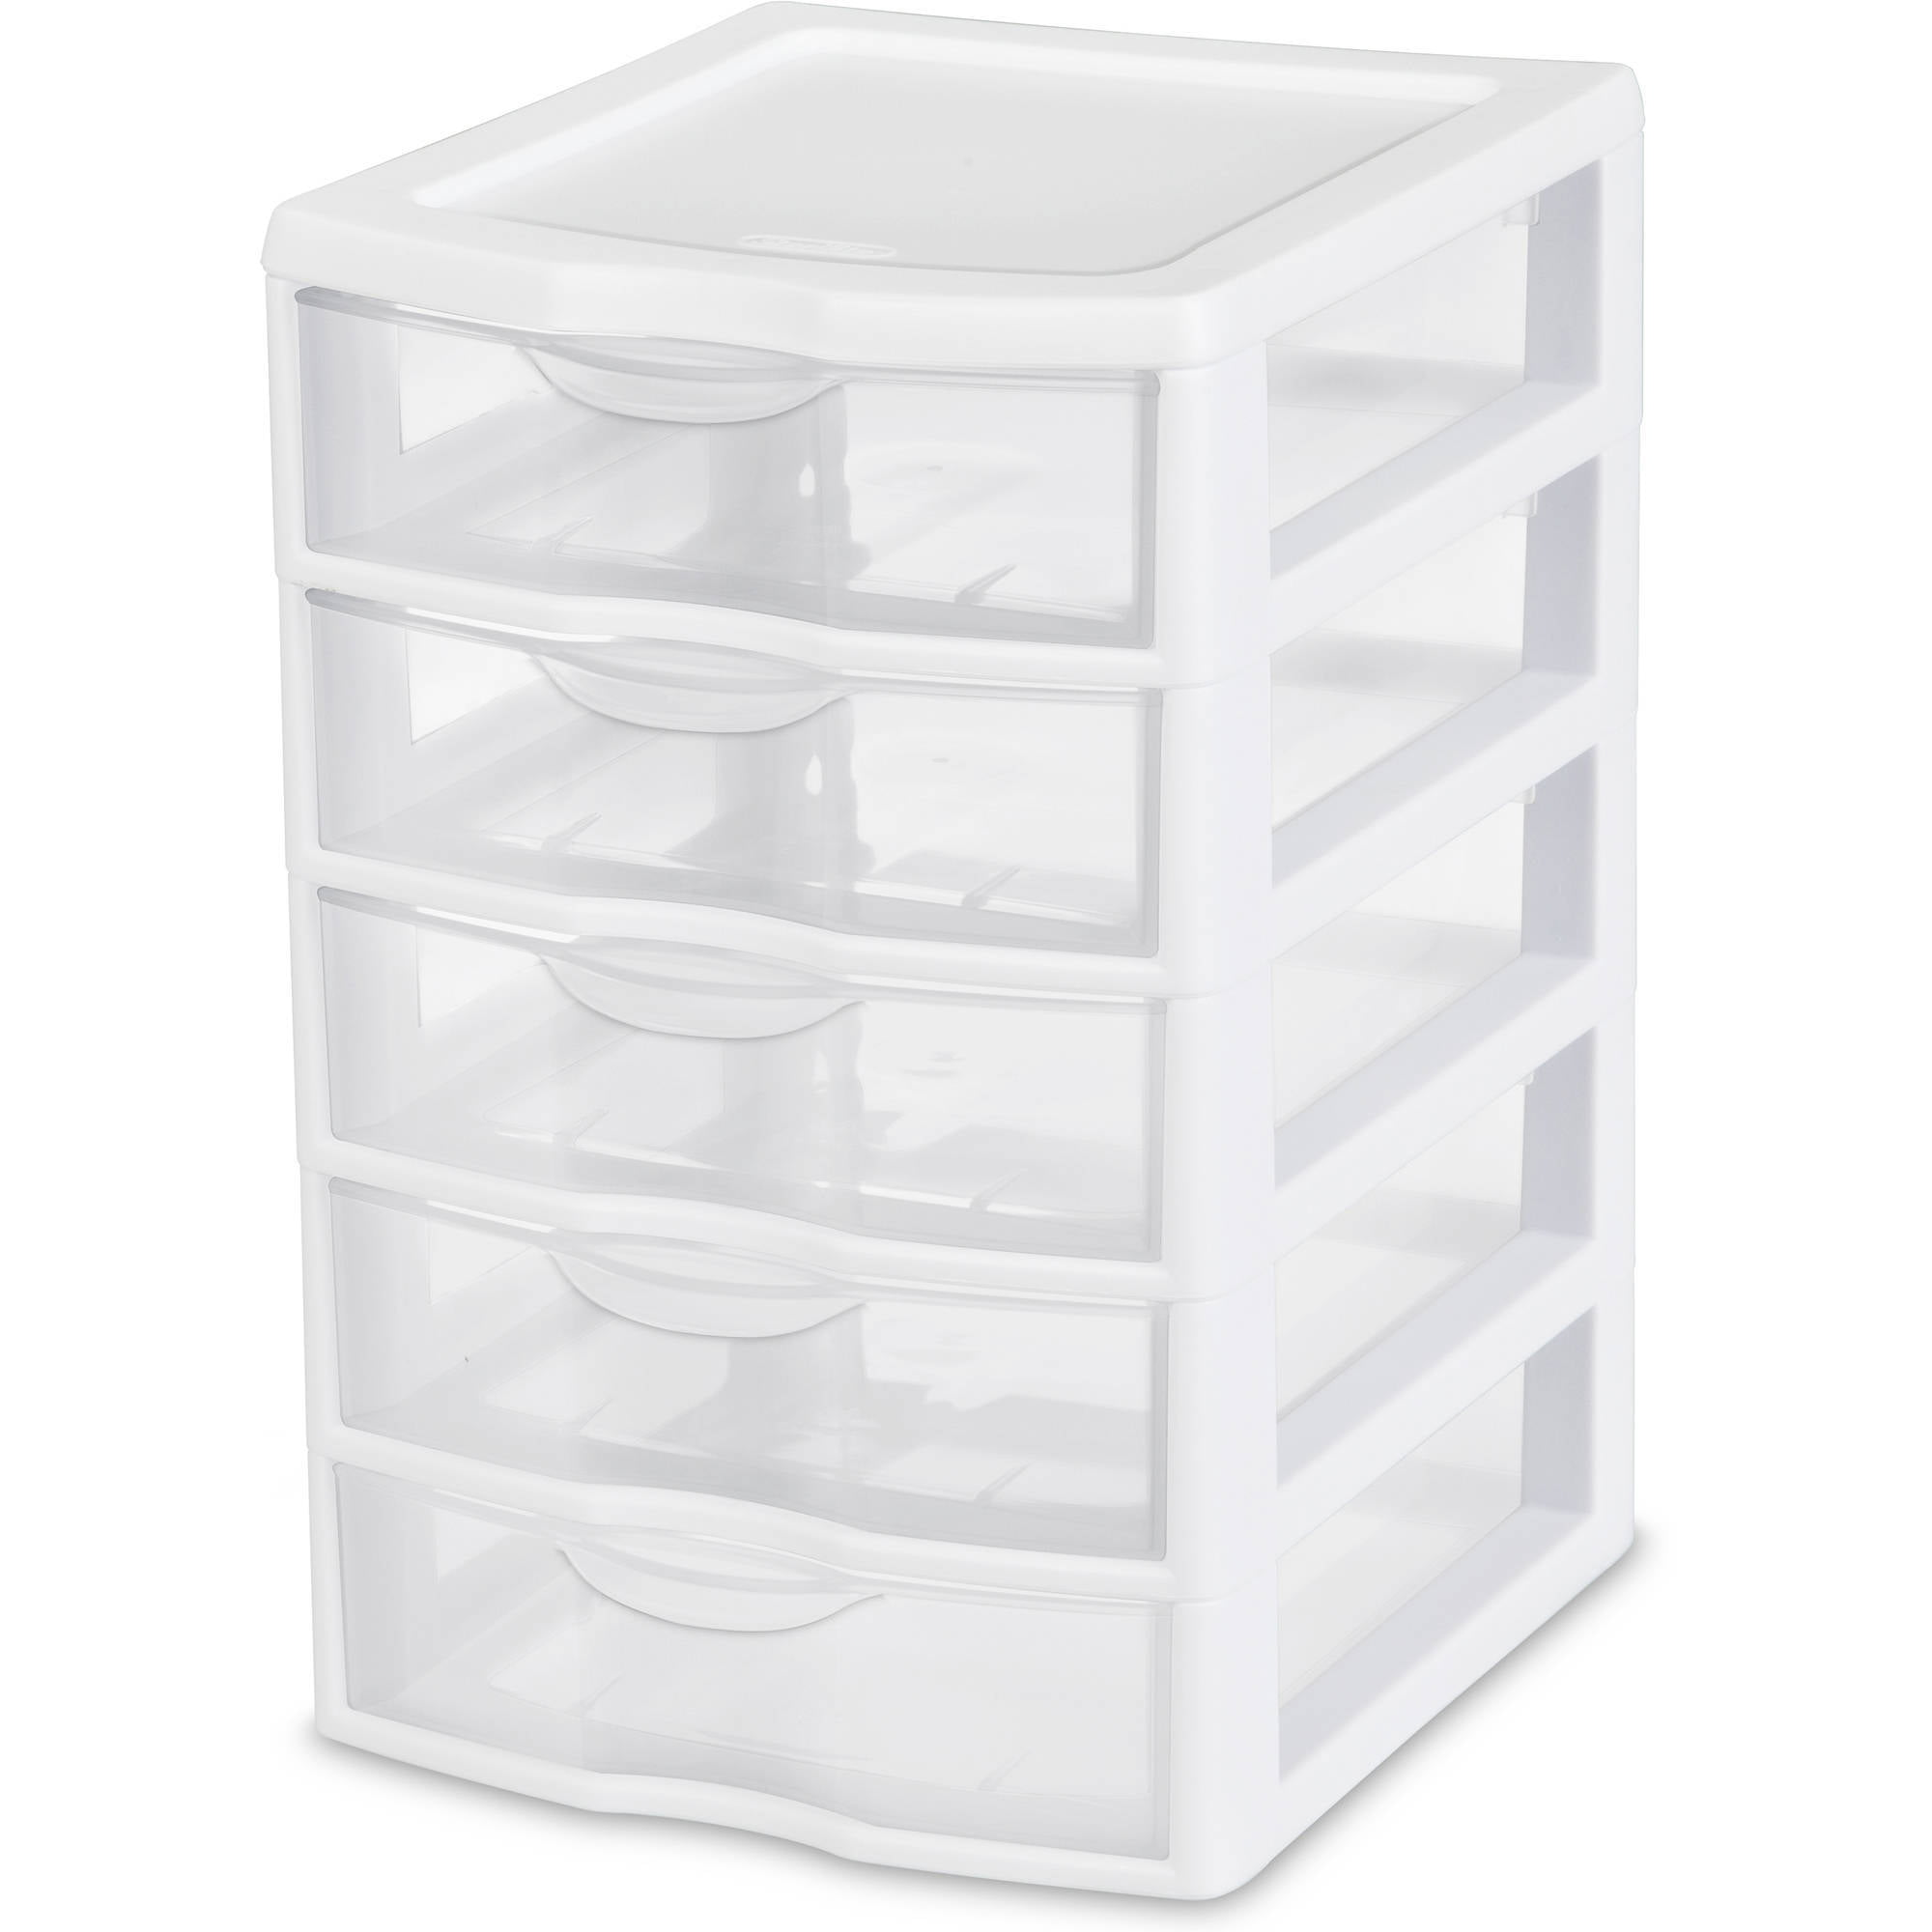 Hefty Modular Clear Storage Bins 100 Qt. XL Stackable Bin with Latch White/Navy - Walmart.com  sc 1 st  Walmart & Hefty Modular Clear Storage Bins 100 Qt. XL Stackable Bin with ...